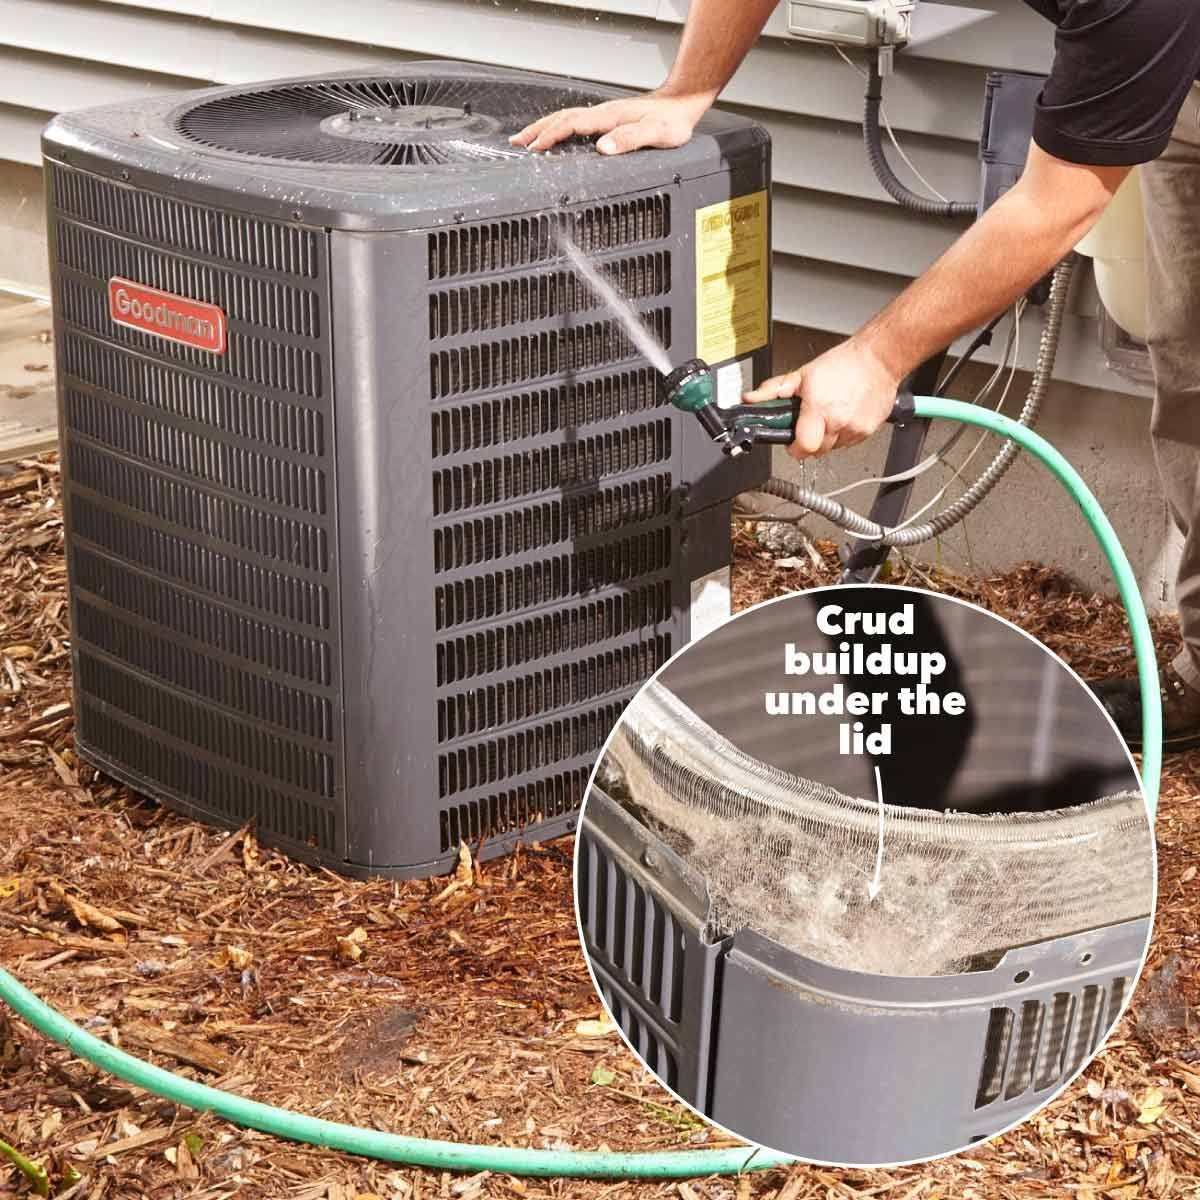 DIY Air Conditioning Repair - Step by Step | Family Handyman